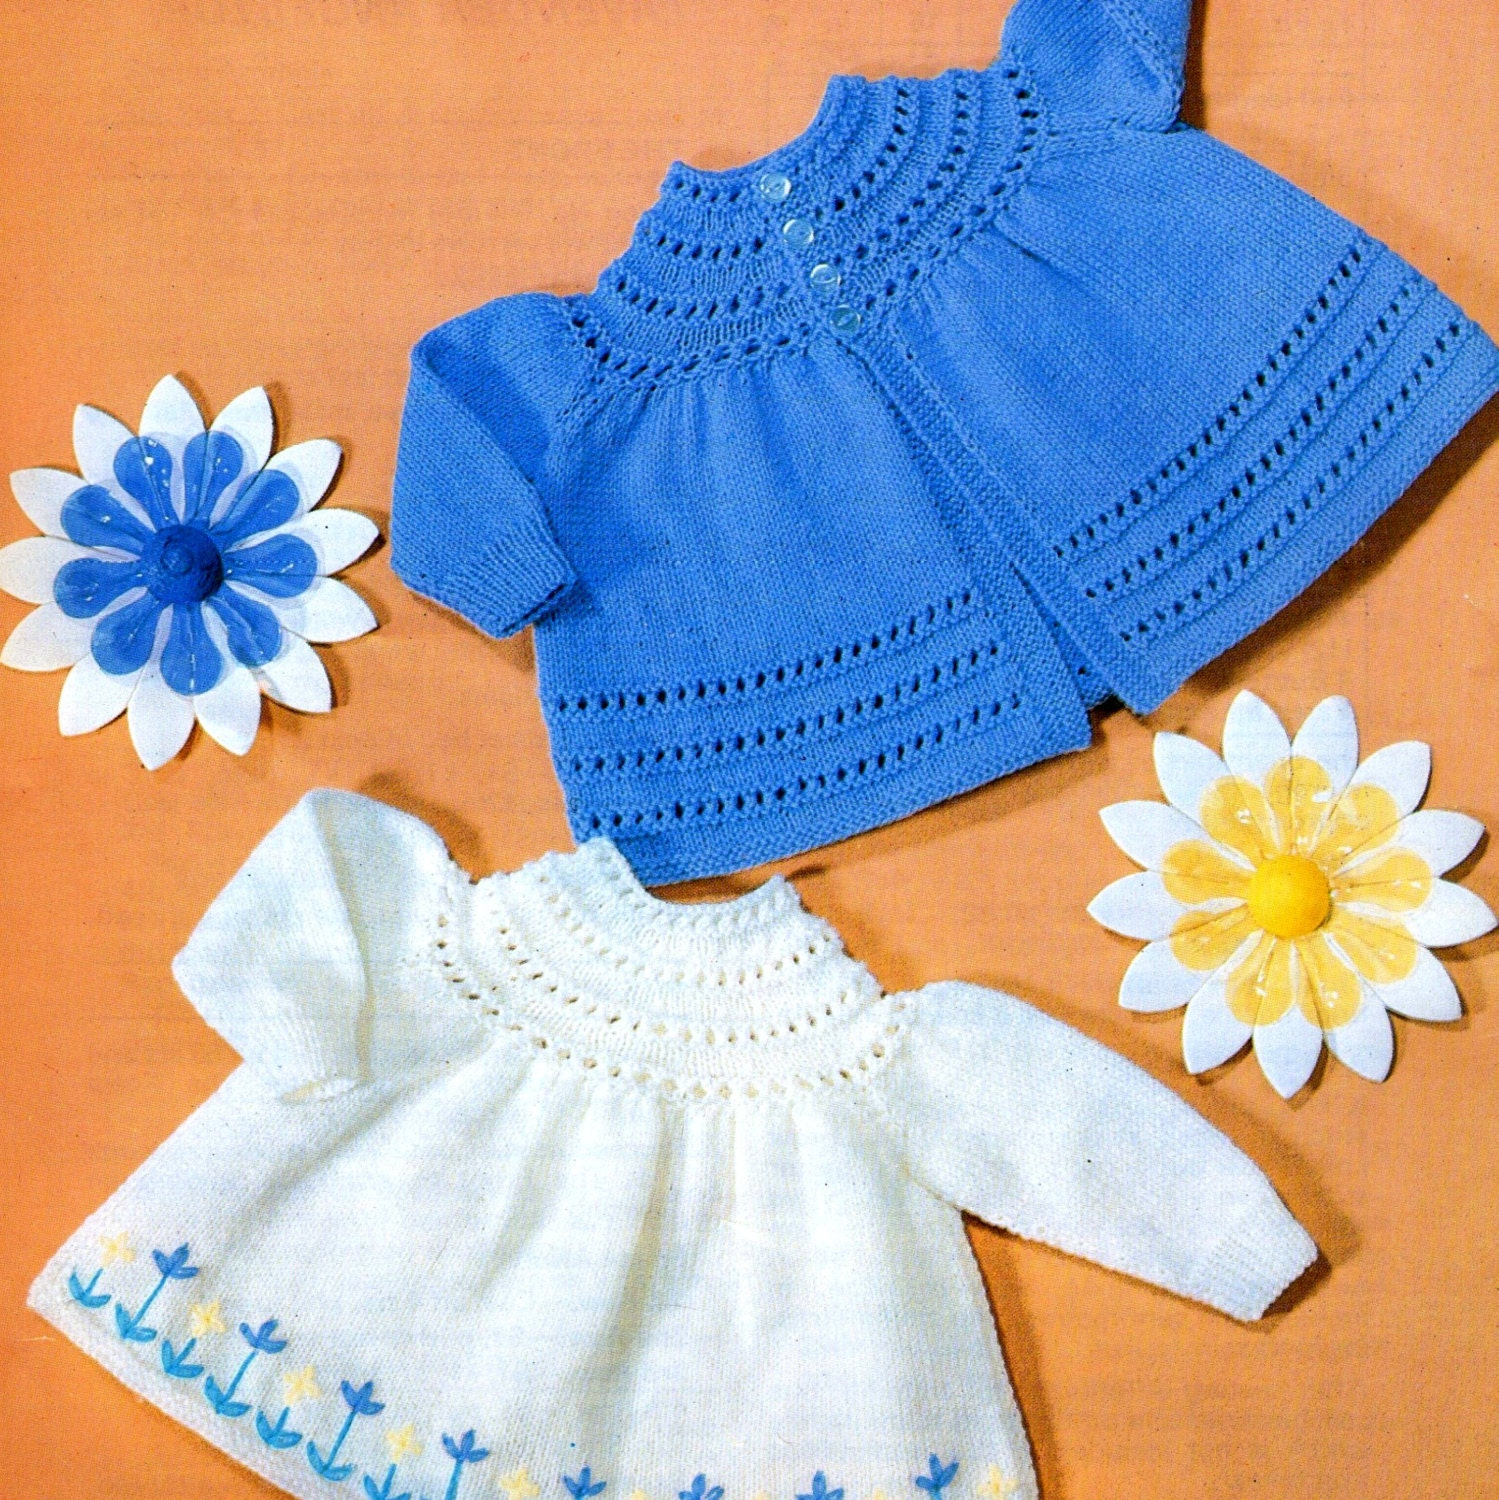 Knitting Pattern Angel Top : Vintage Knitting Pattern Baby Angel Top Matinee Coats